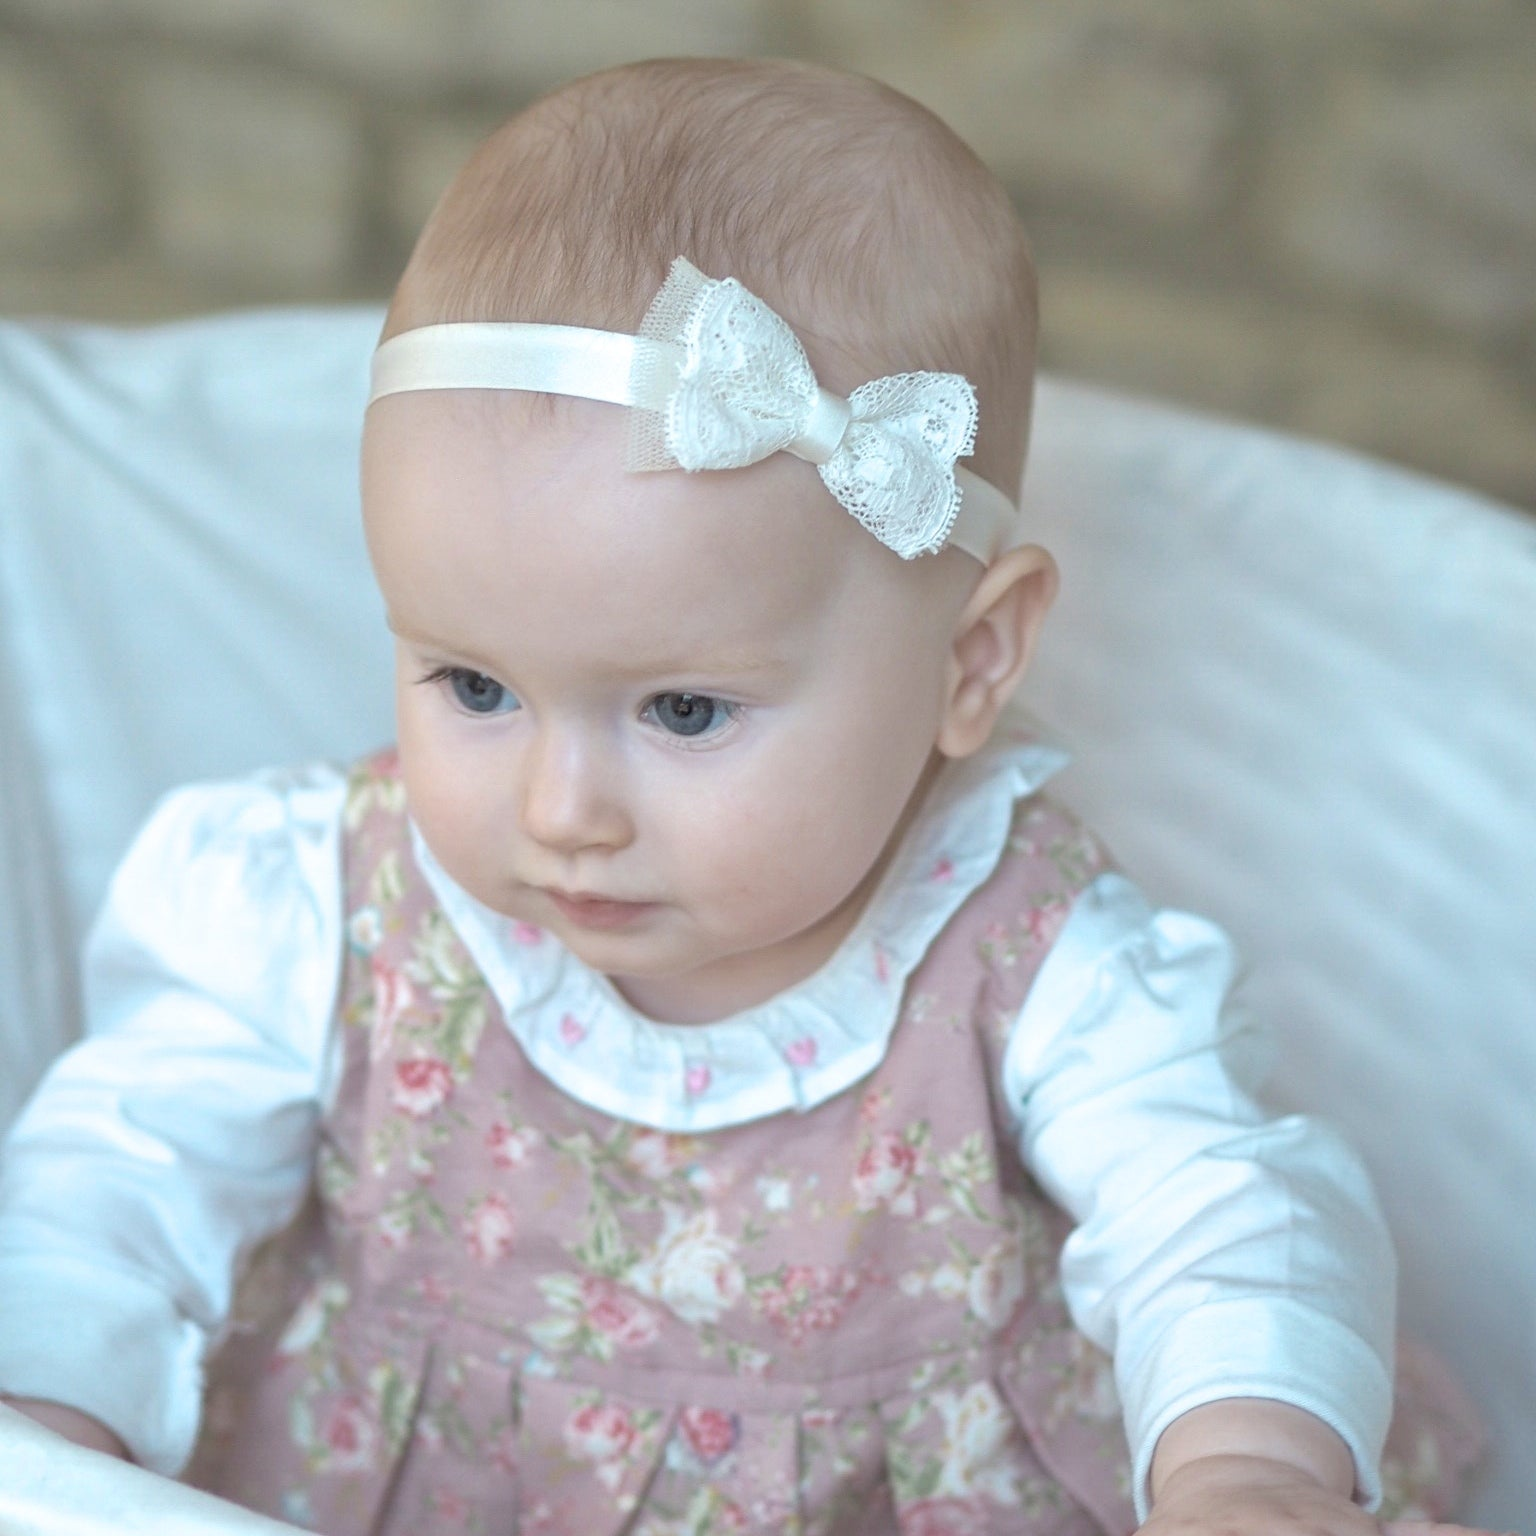 ... Little Love Christening Headbands for babies and toddlers fc3083bb8de